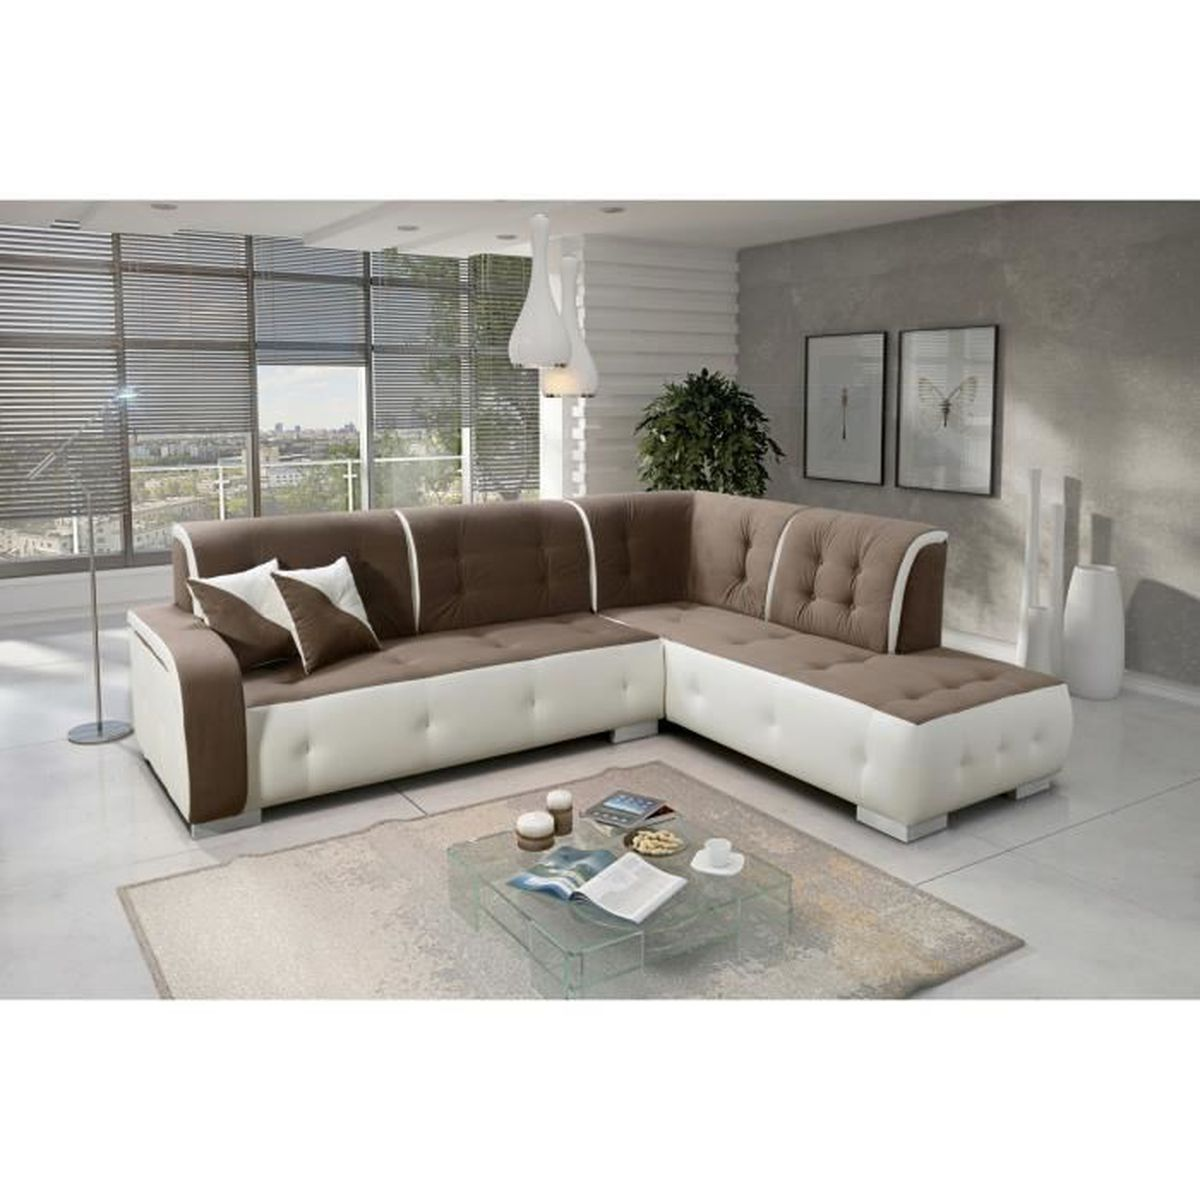 canap d 39 angle droit florida taupe et blanc achat vente canap sofa divan cdiscount. Black Bedroom Furniture Sets. Home Design Ideas